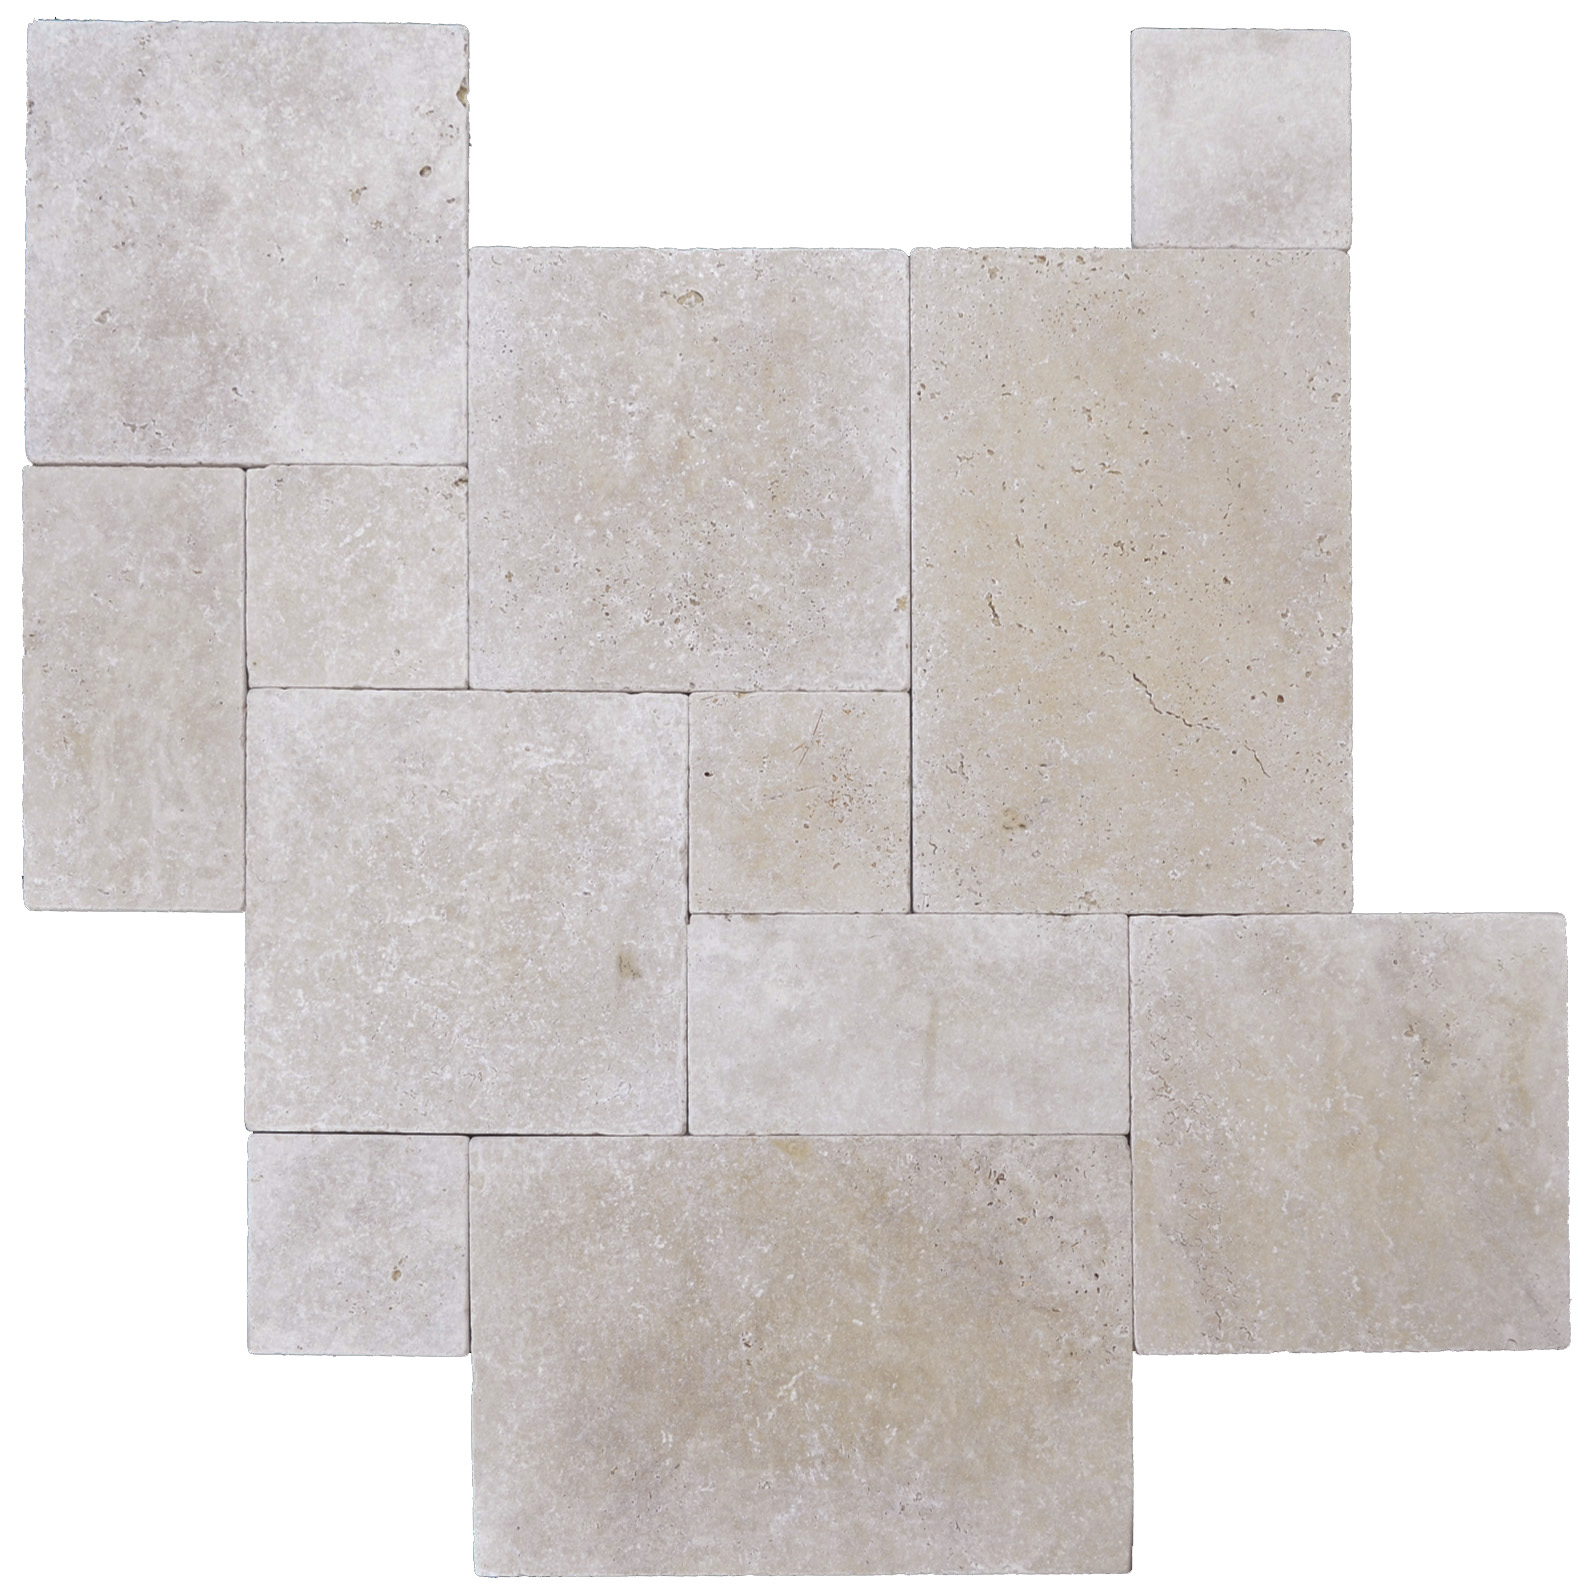 White Tumbled French Pattern Travertine Tiles-Travertine tiles sale-Atlantic Stone Source